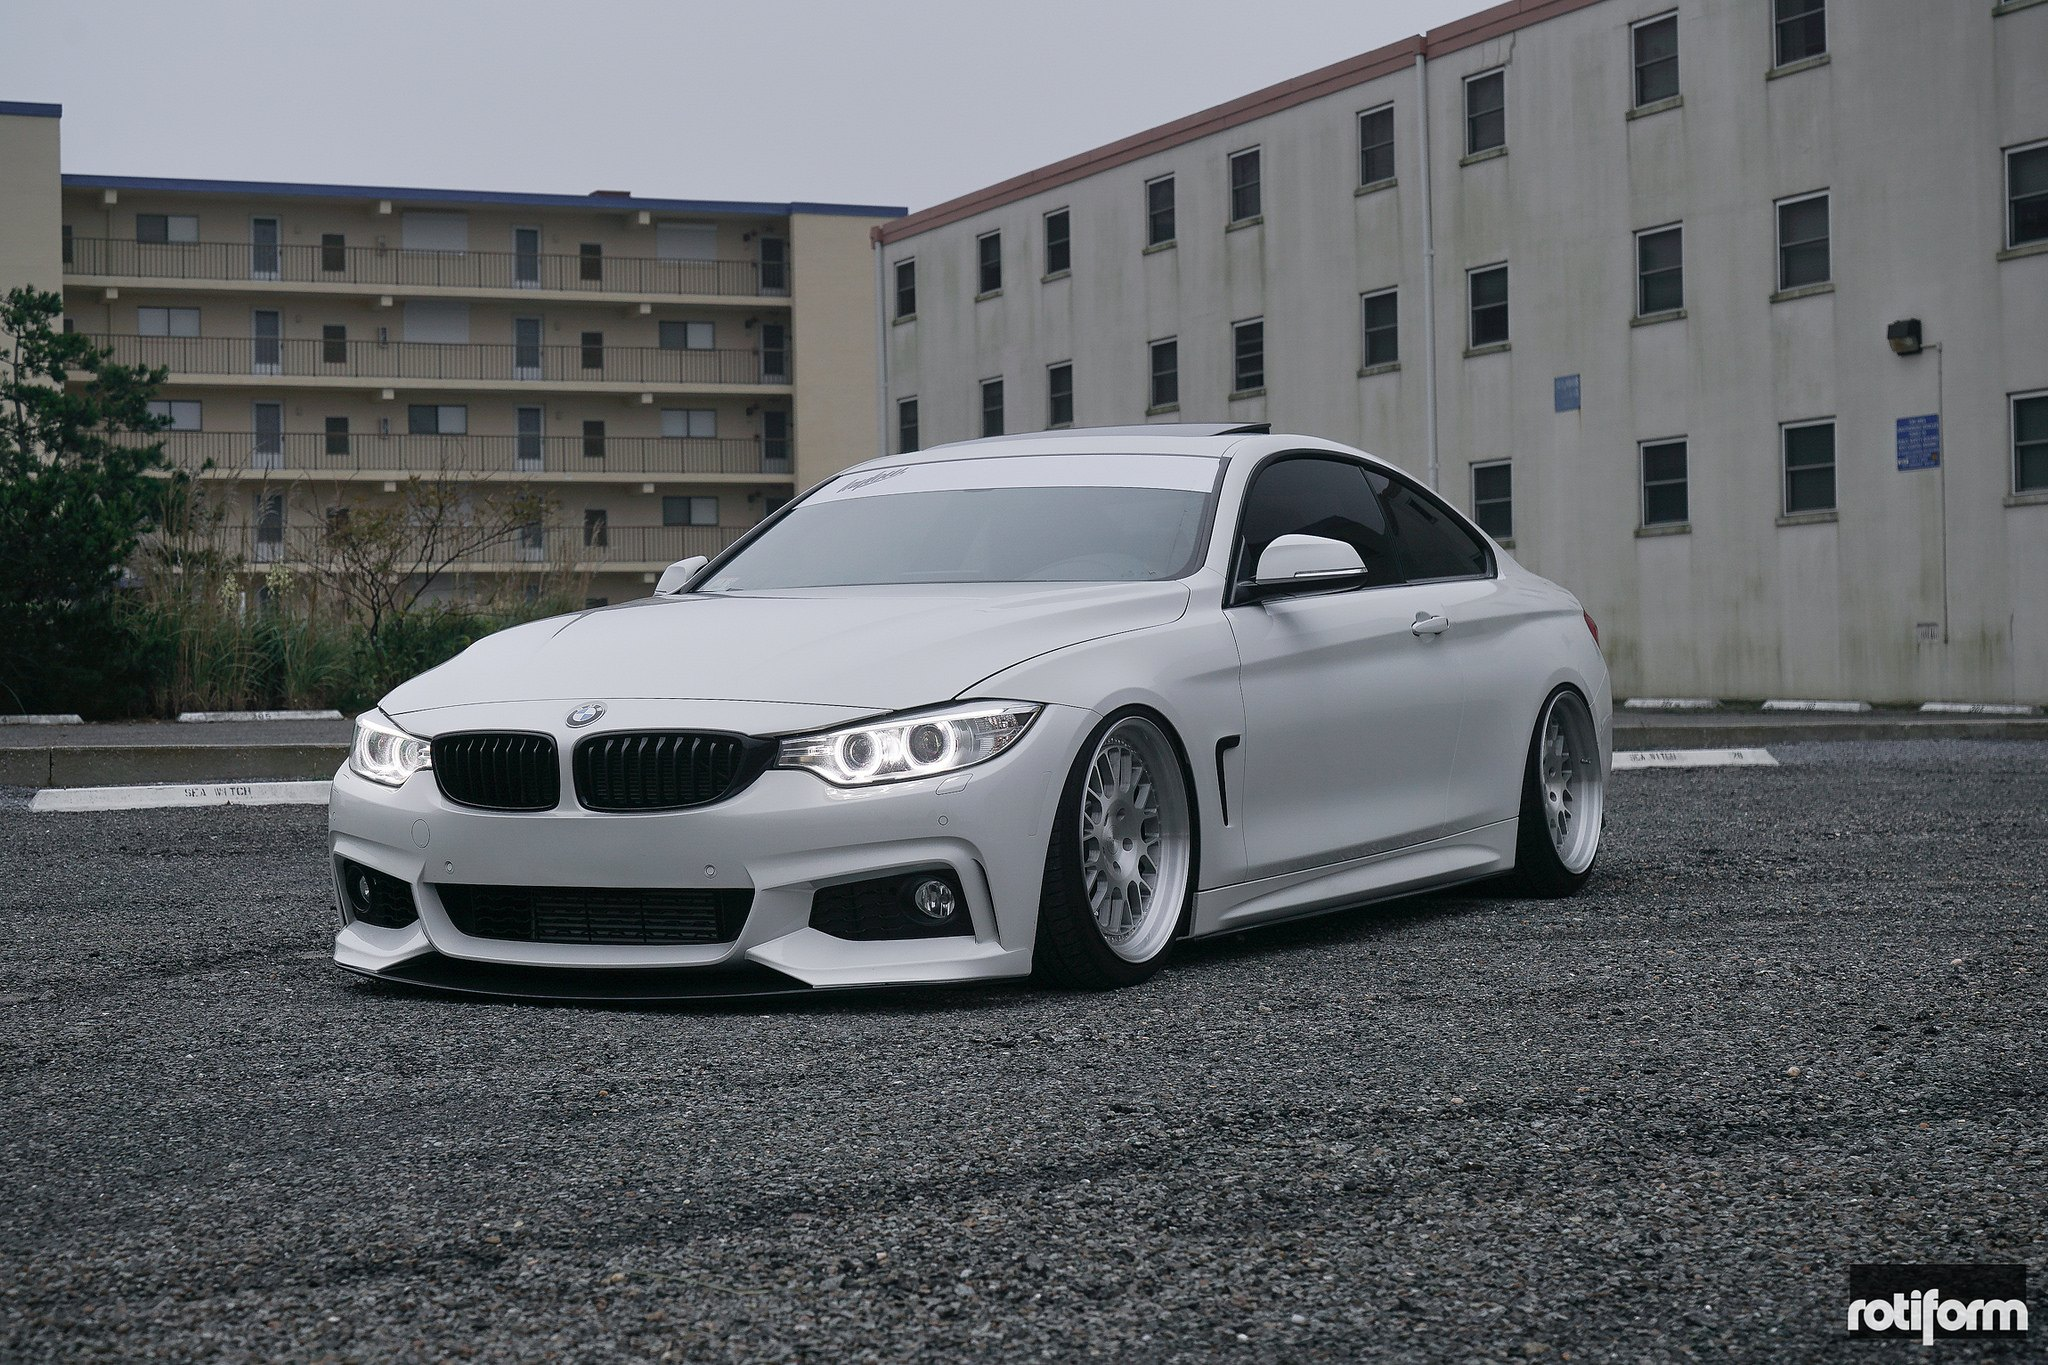 Stanced BMW M4 Coupe at H2Oi — CARiD Gallery